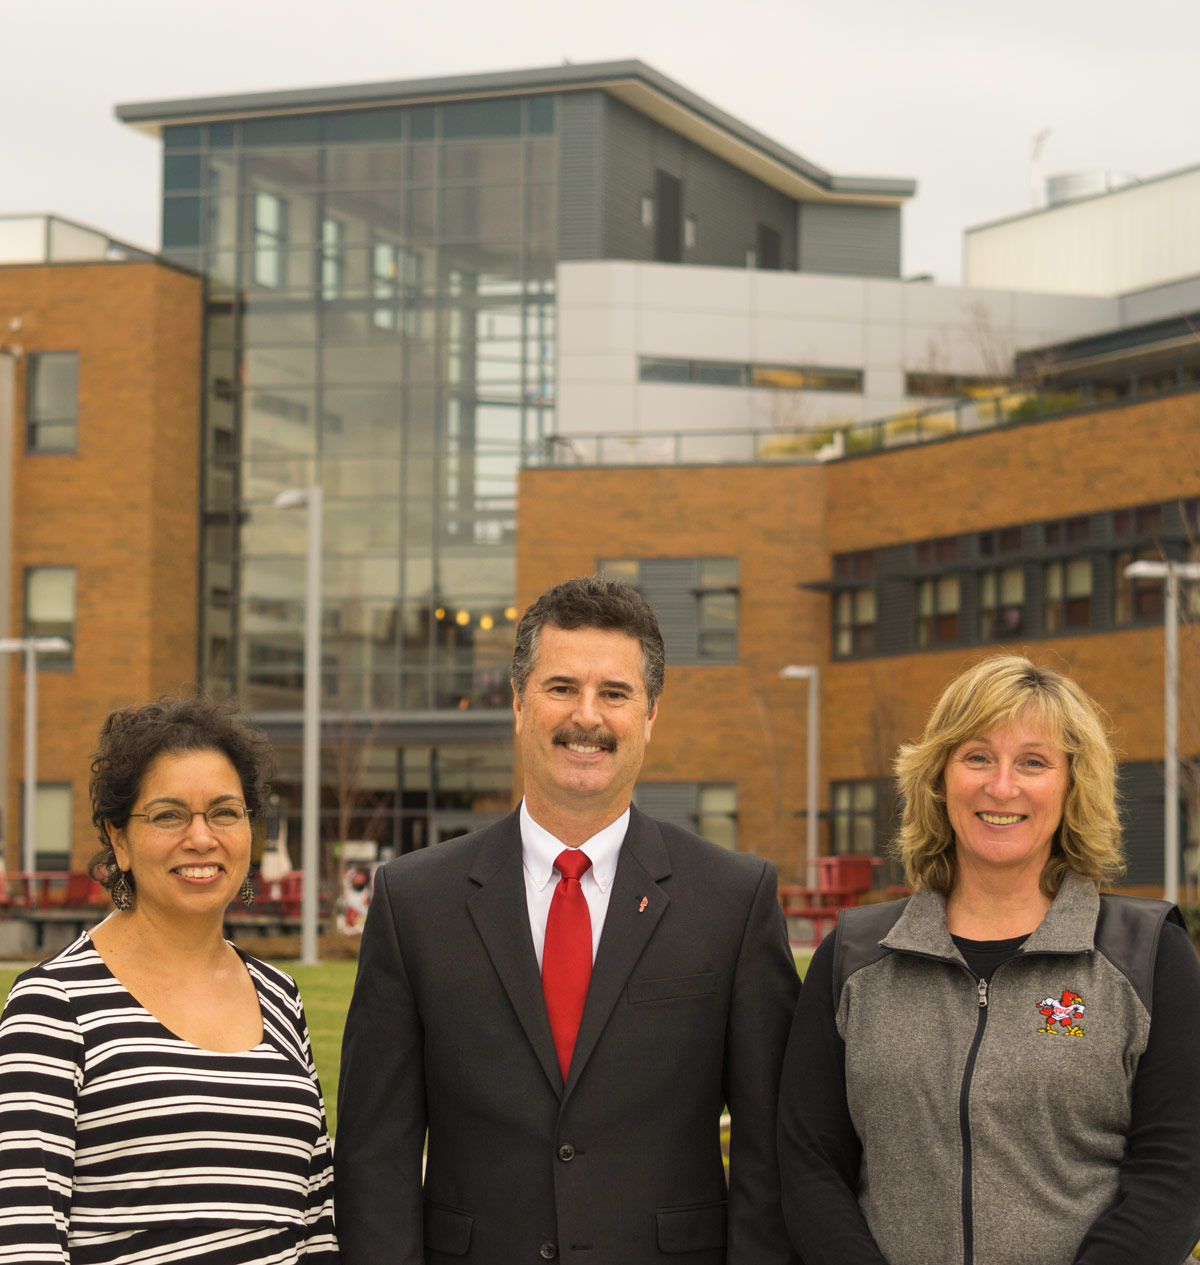 Skagit Valley College's Dr. Tom Keegan, Dr. Laura Cailloux, and Sandy Leber